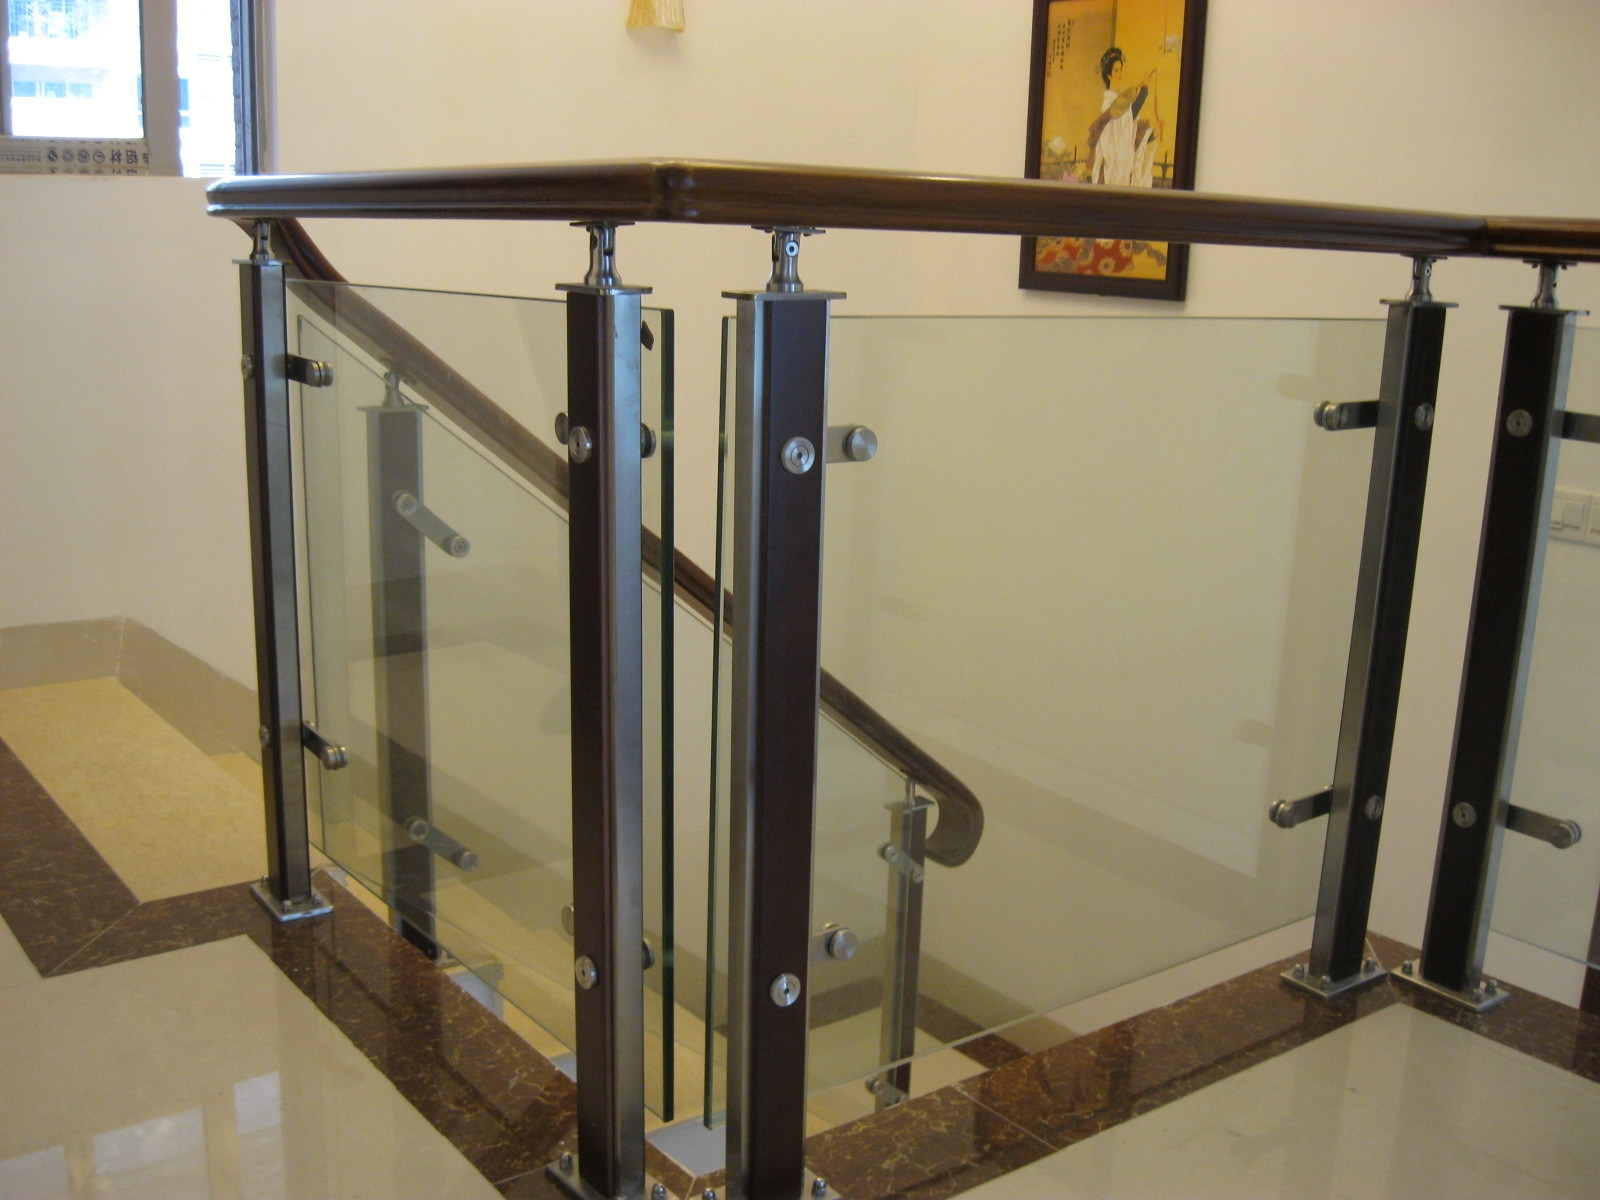 China Stainless Steel 15Mm Thick Tempered Glass Balustrade Wooden | Glass Balustrade With Wooden Handrail | Contemporary | Glass Panel | Interior | Guardrail | Atrium